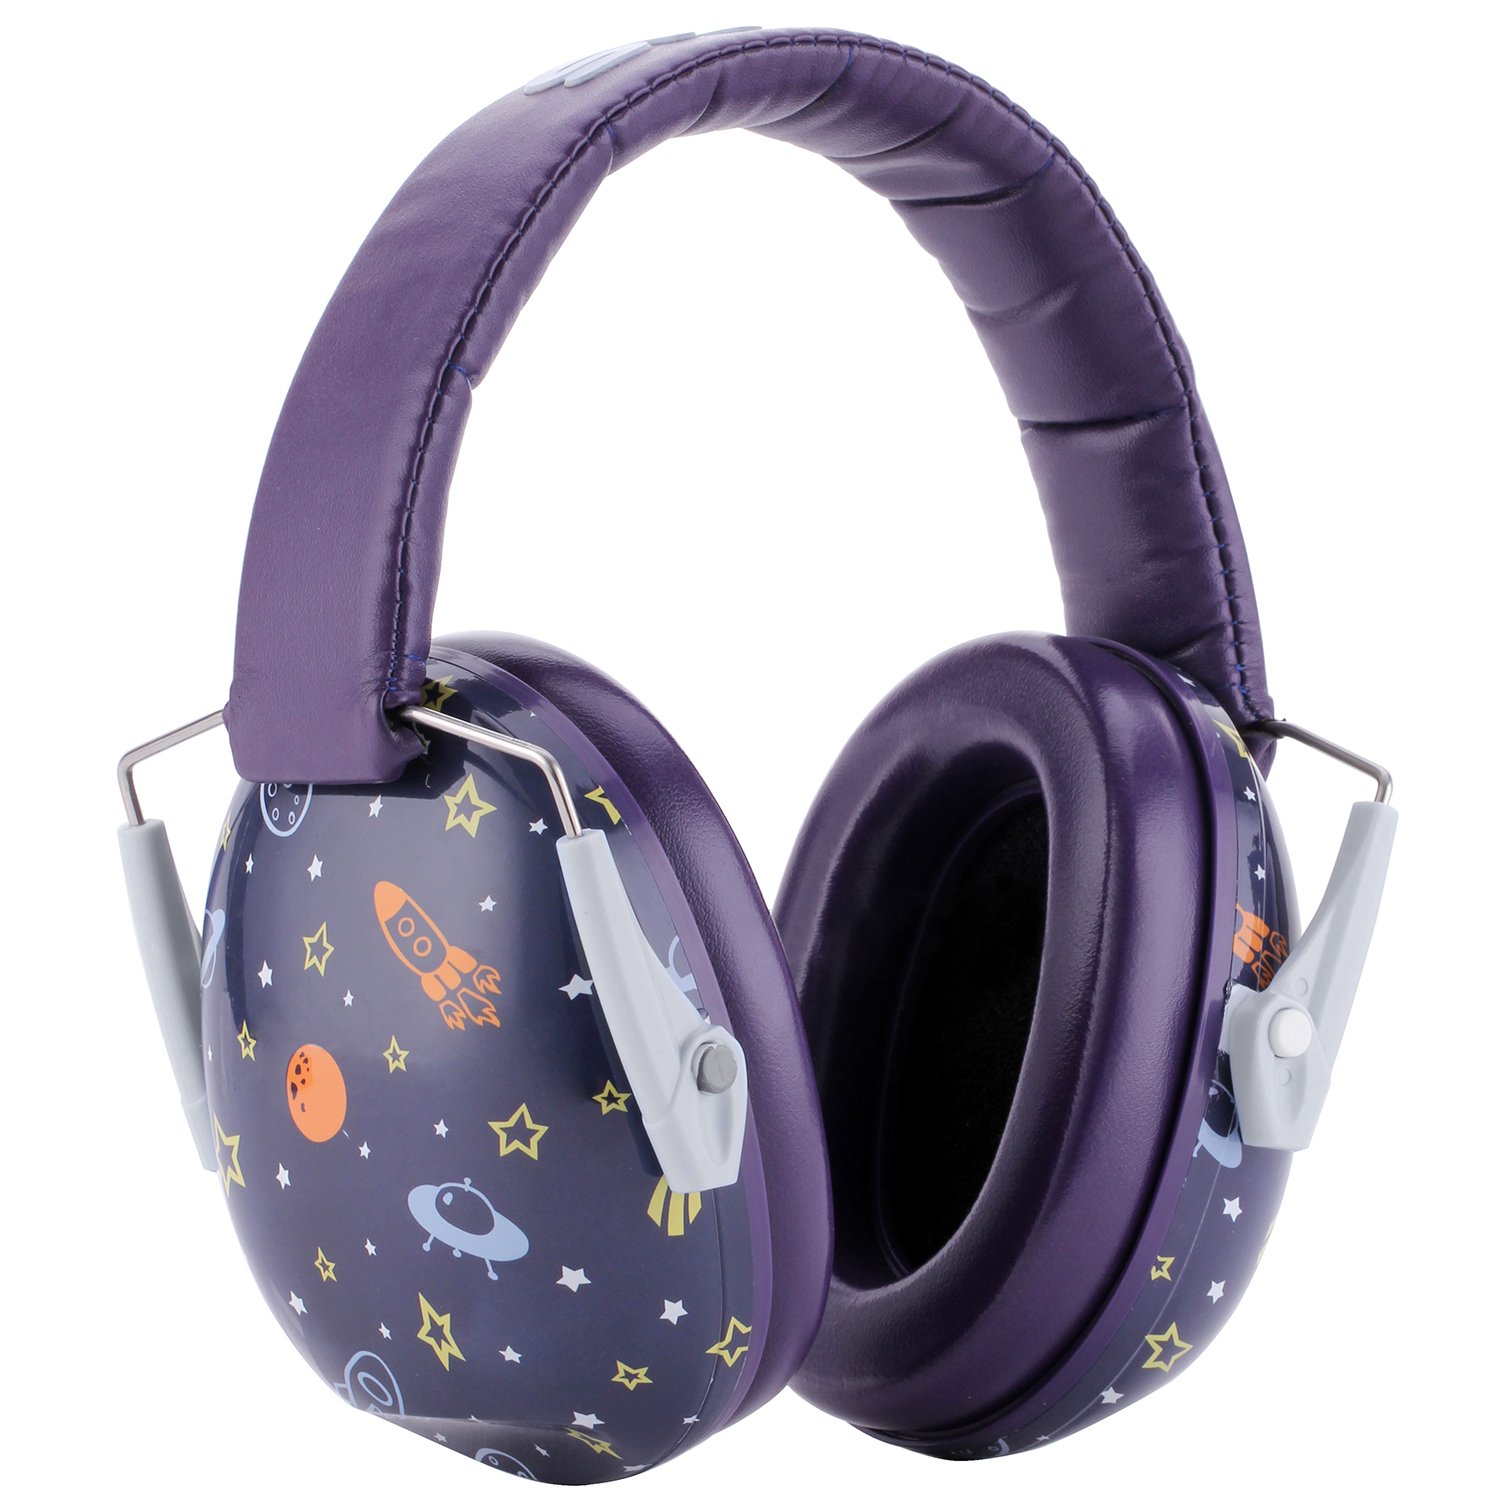 Snug Kids Earmuffs/Hearing Protectors – Adjustable Headband Ear Defenders for Children and Adults (Space) by Snug (Image #4)